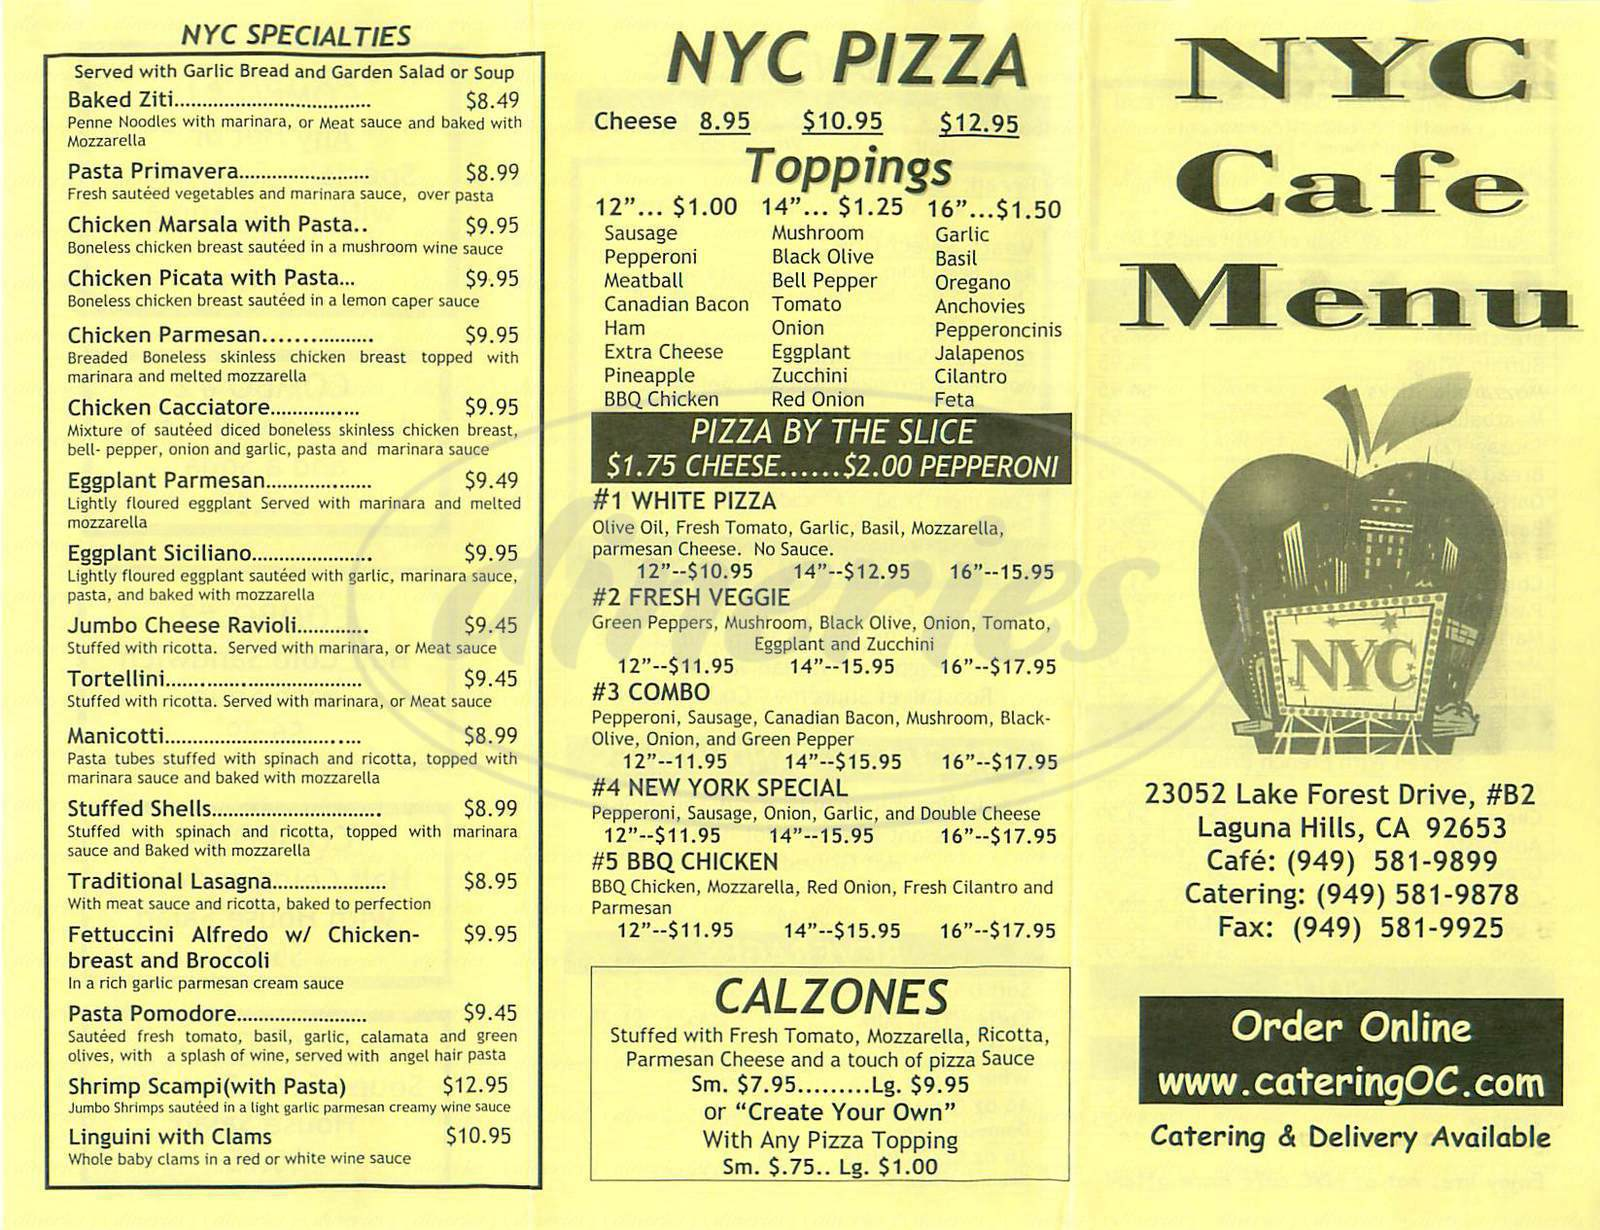 menu for NYC Cafe